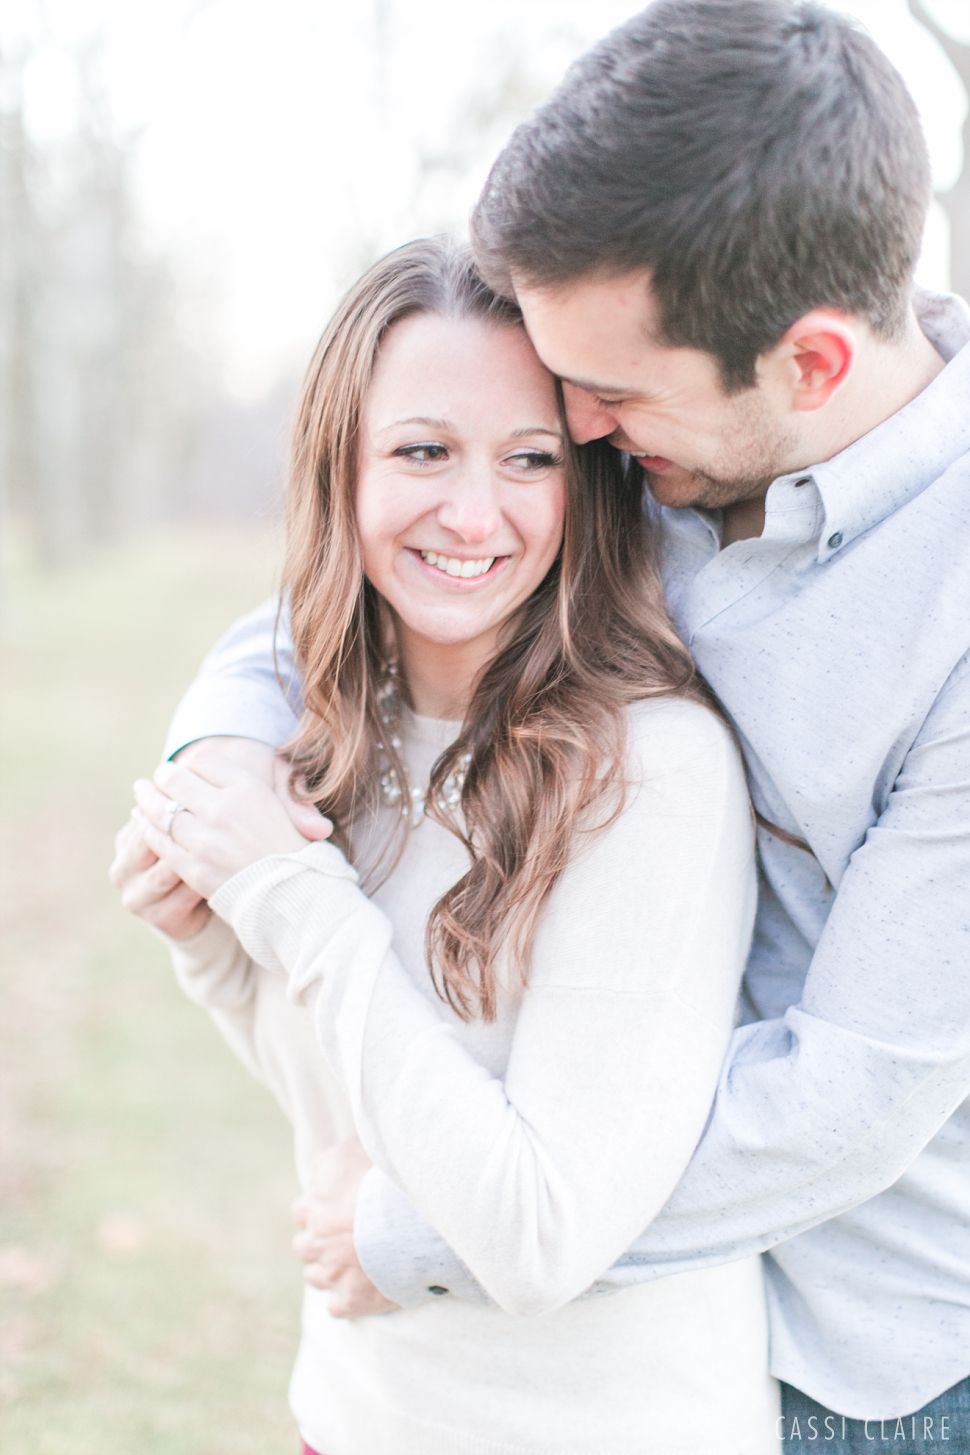 Best-NJ-Engagement-Photos-CassiClaire_05.jpg